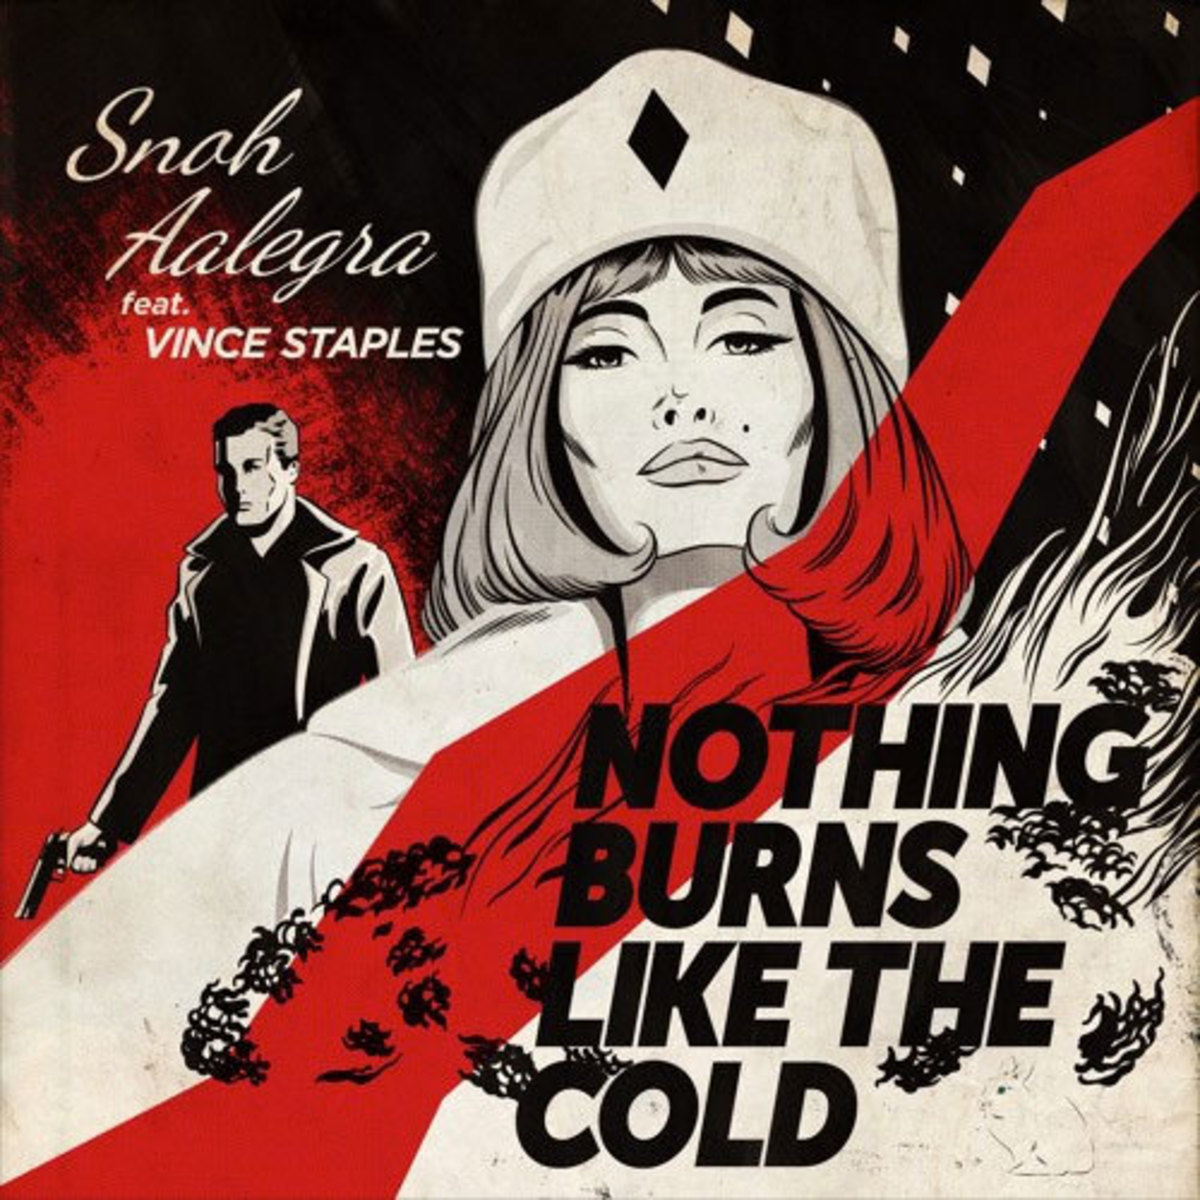 snoh-aalegra-nothing-burns-like-the-cold.jpg